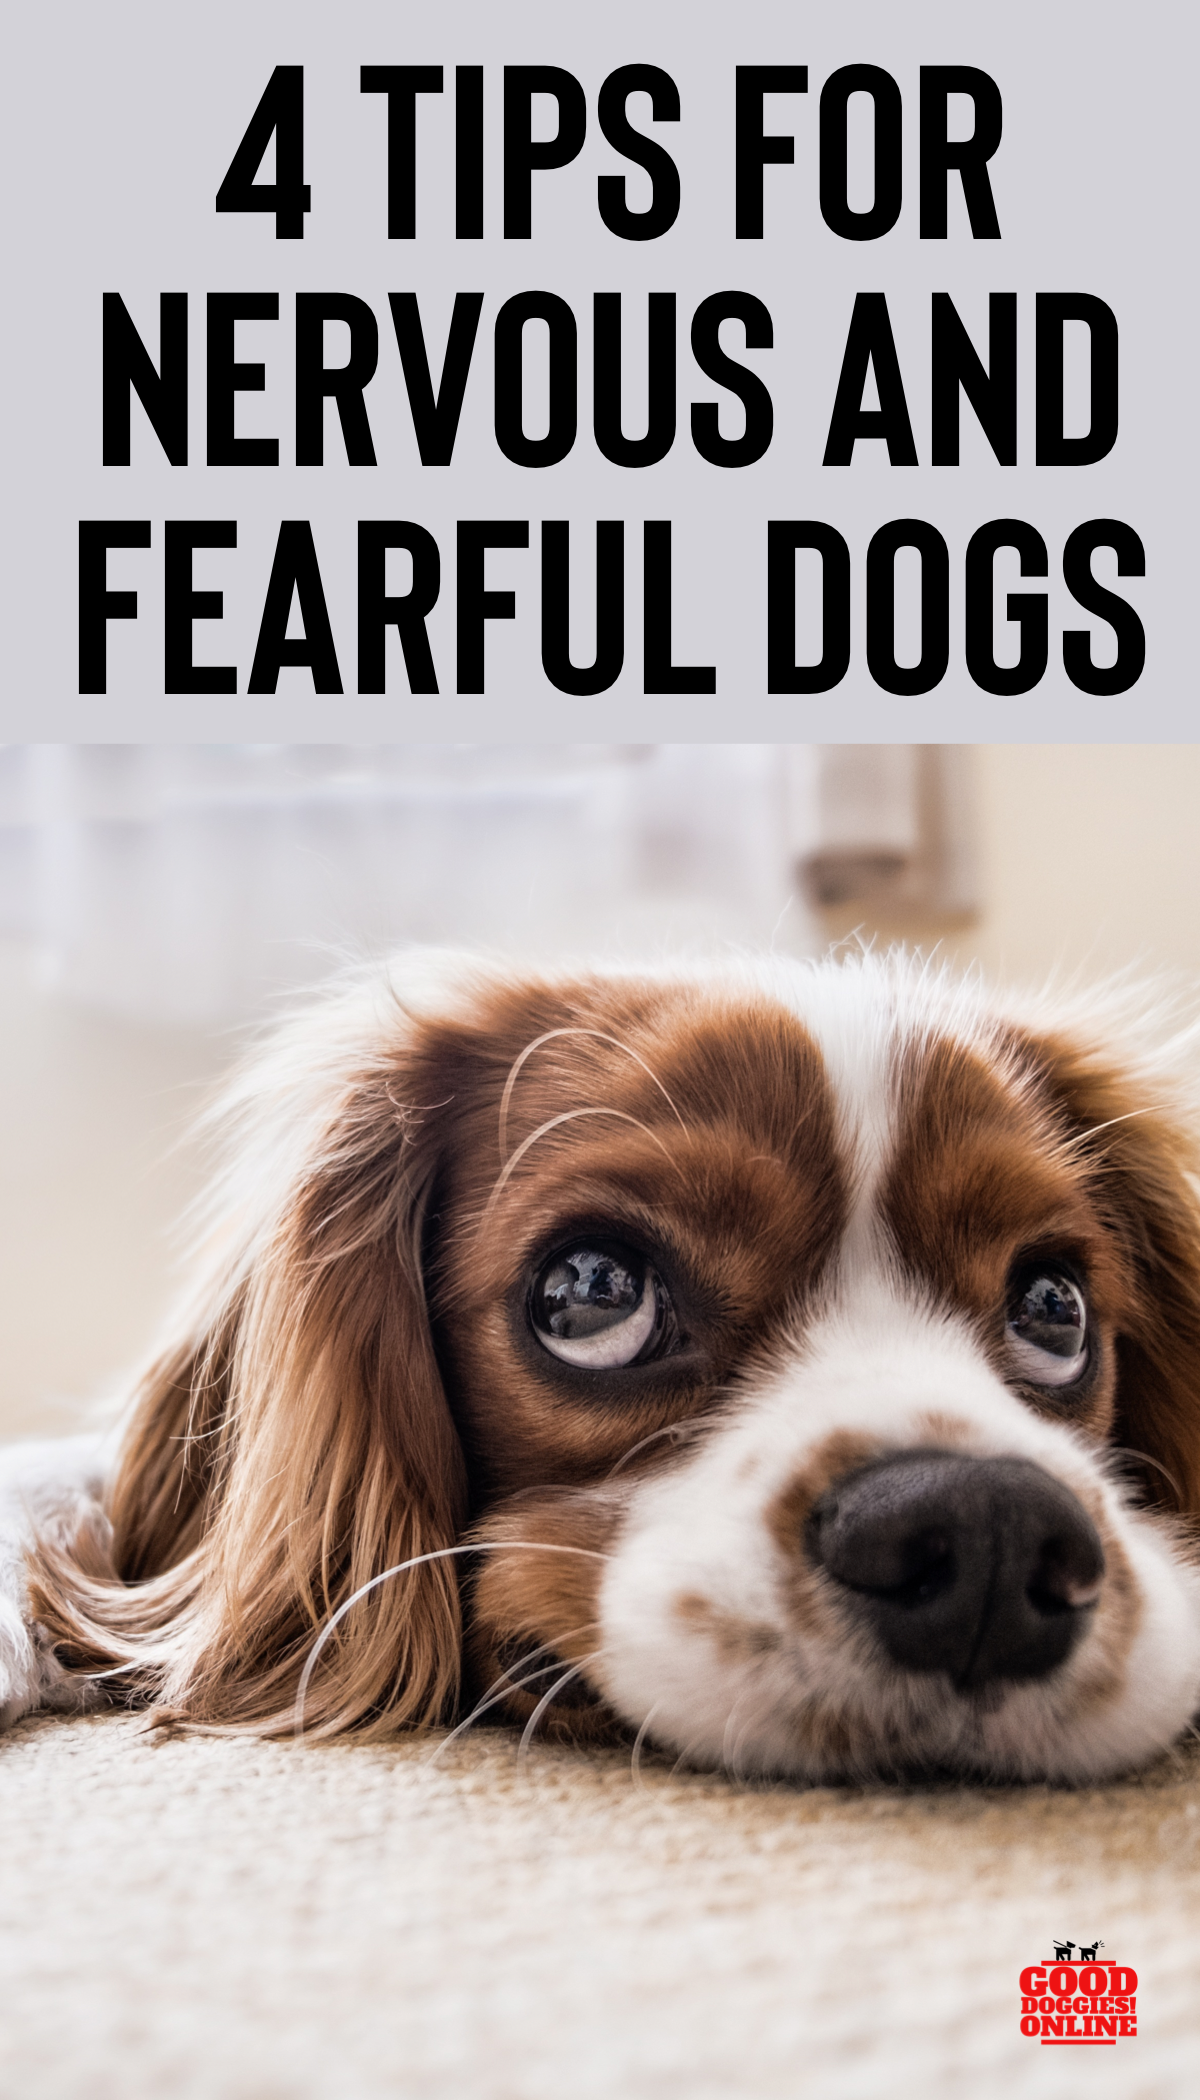 4 Tips for Nervous and Fearful Dogs Dog psychology, Dogs